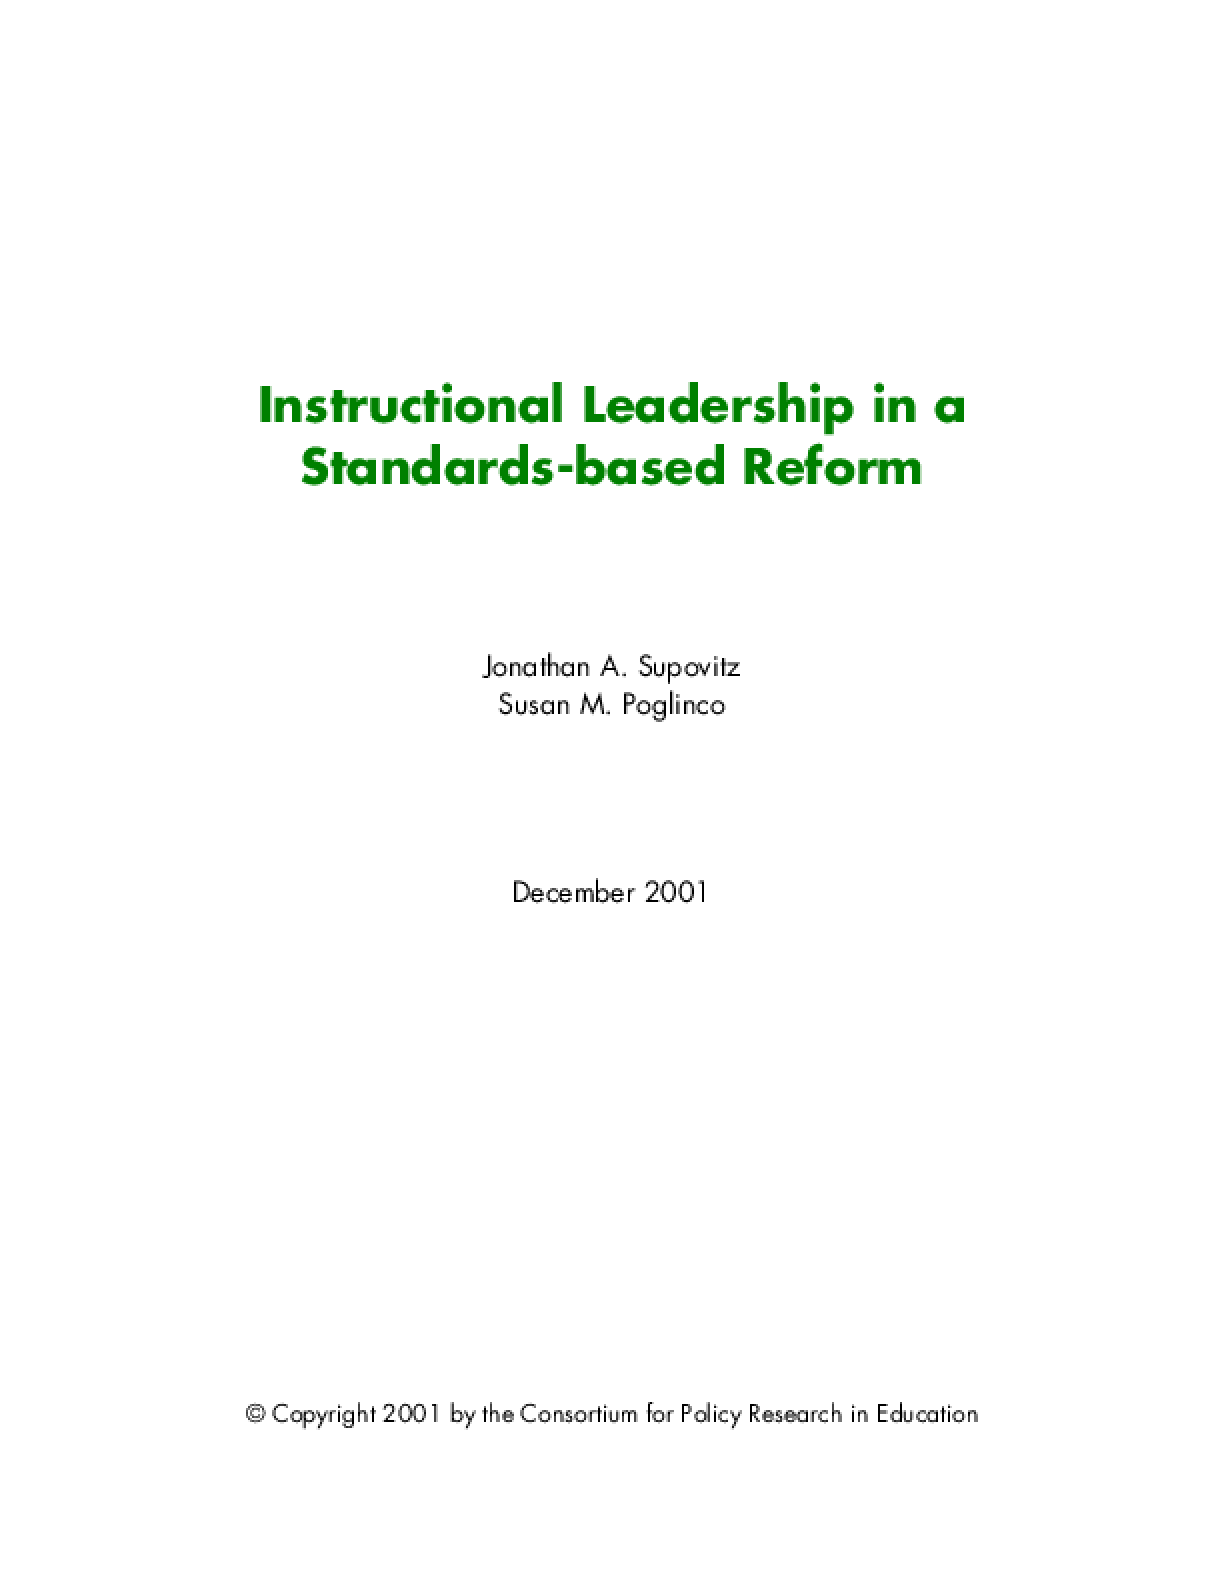 Instructional Leadership in a Standards-Based Reform